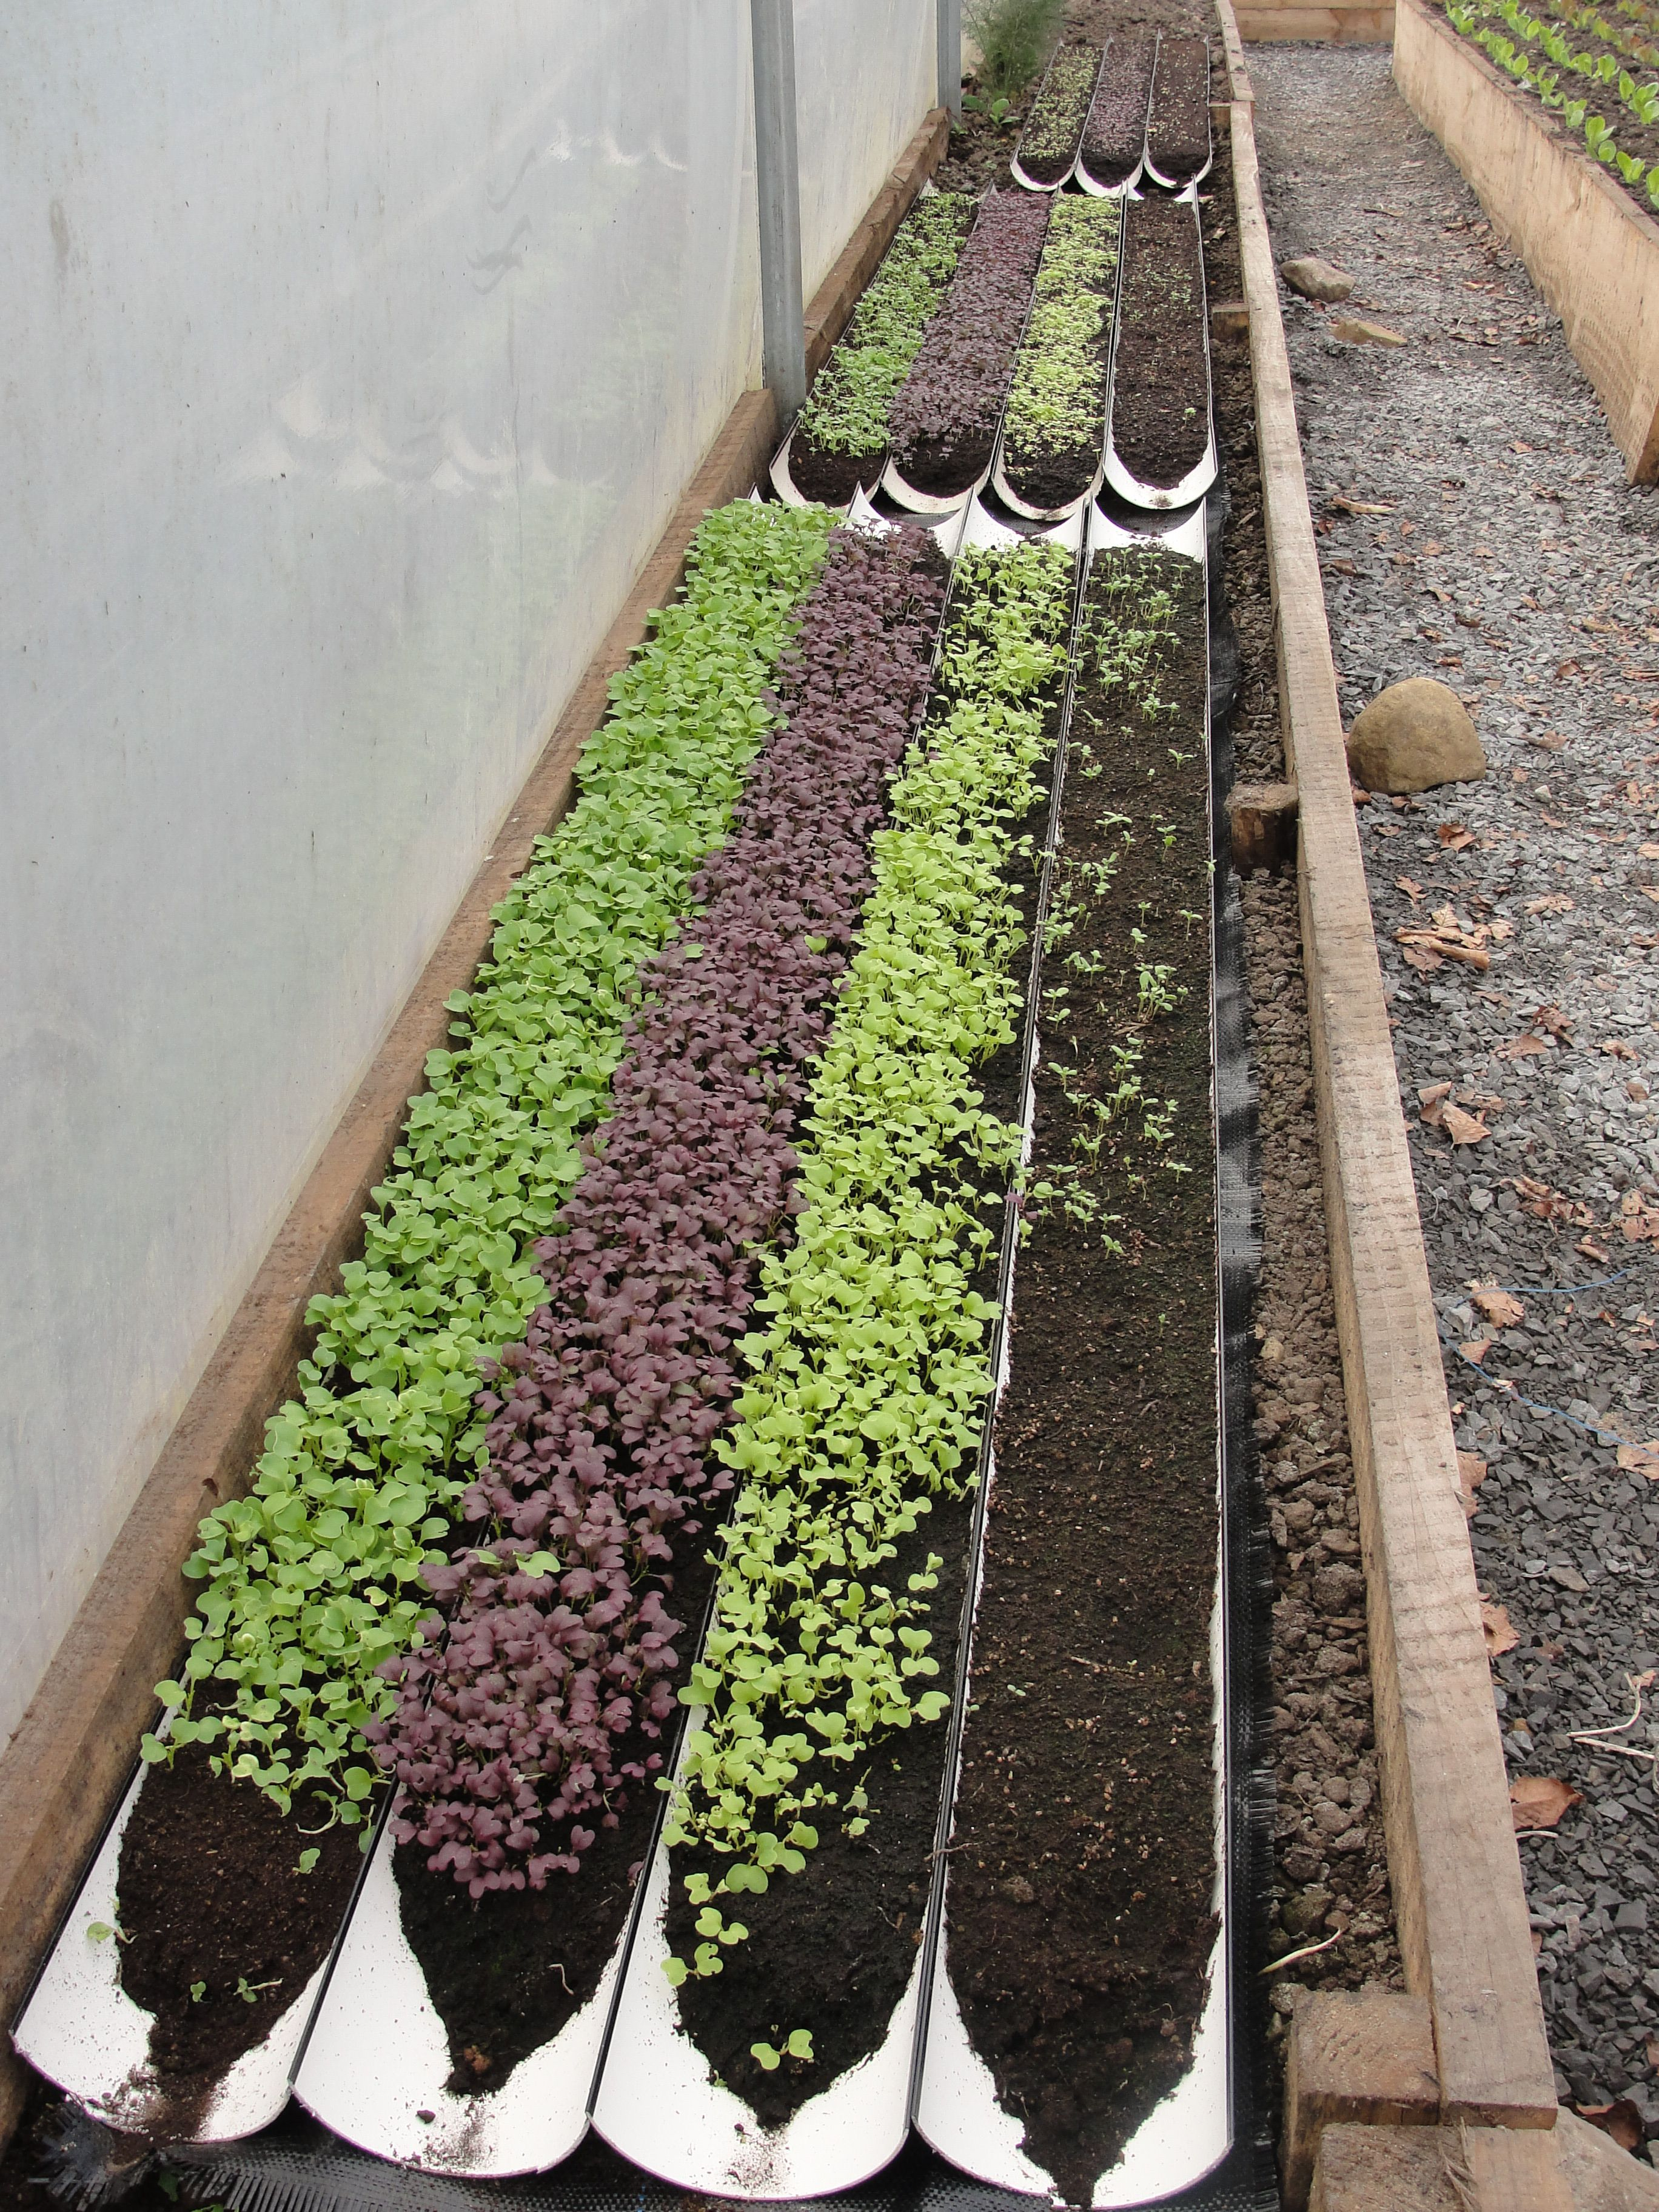 Neven S Secret To Great Flavours Home Grown Micro Greens